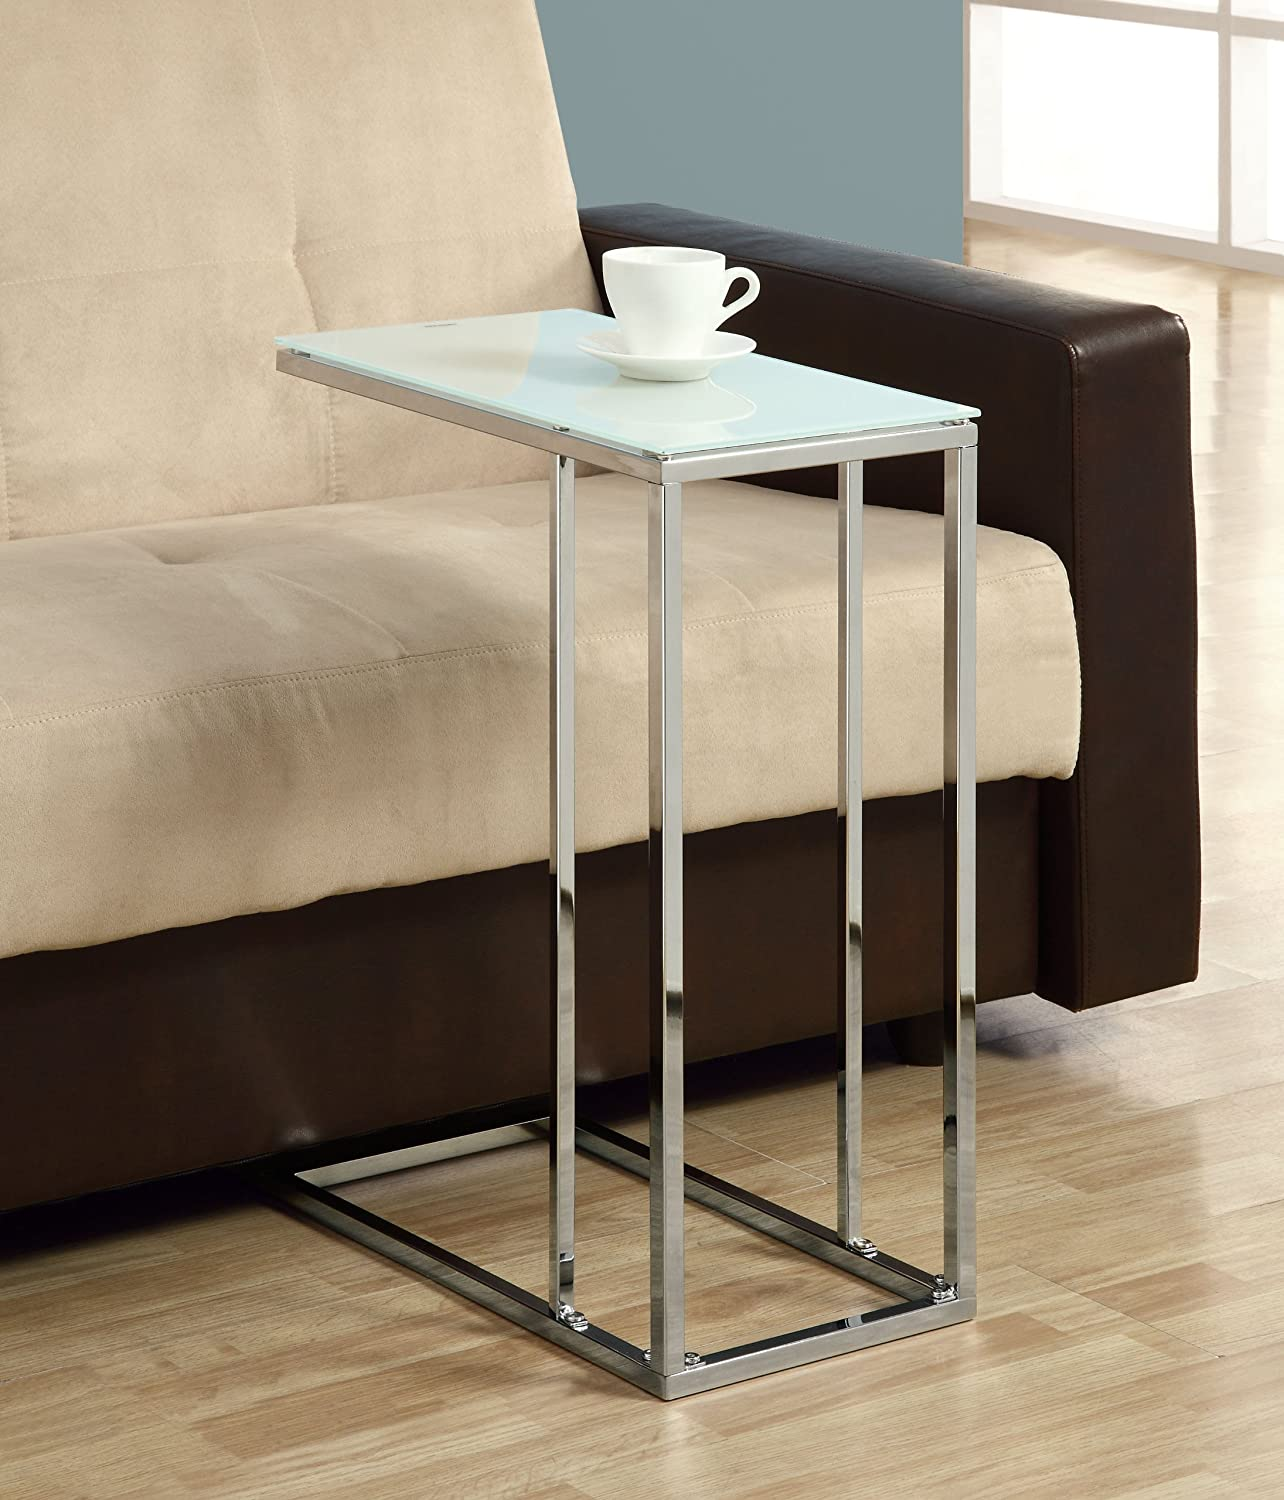 title | Couch Table